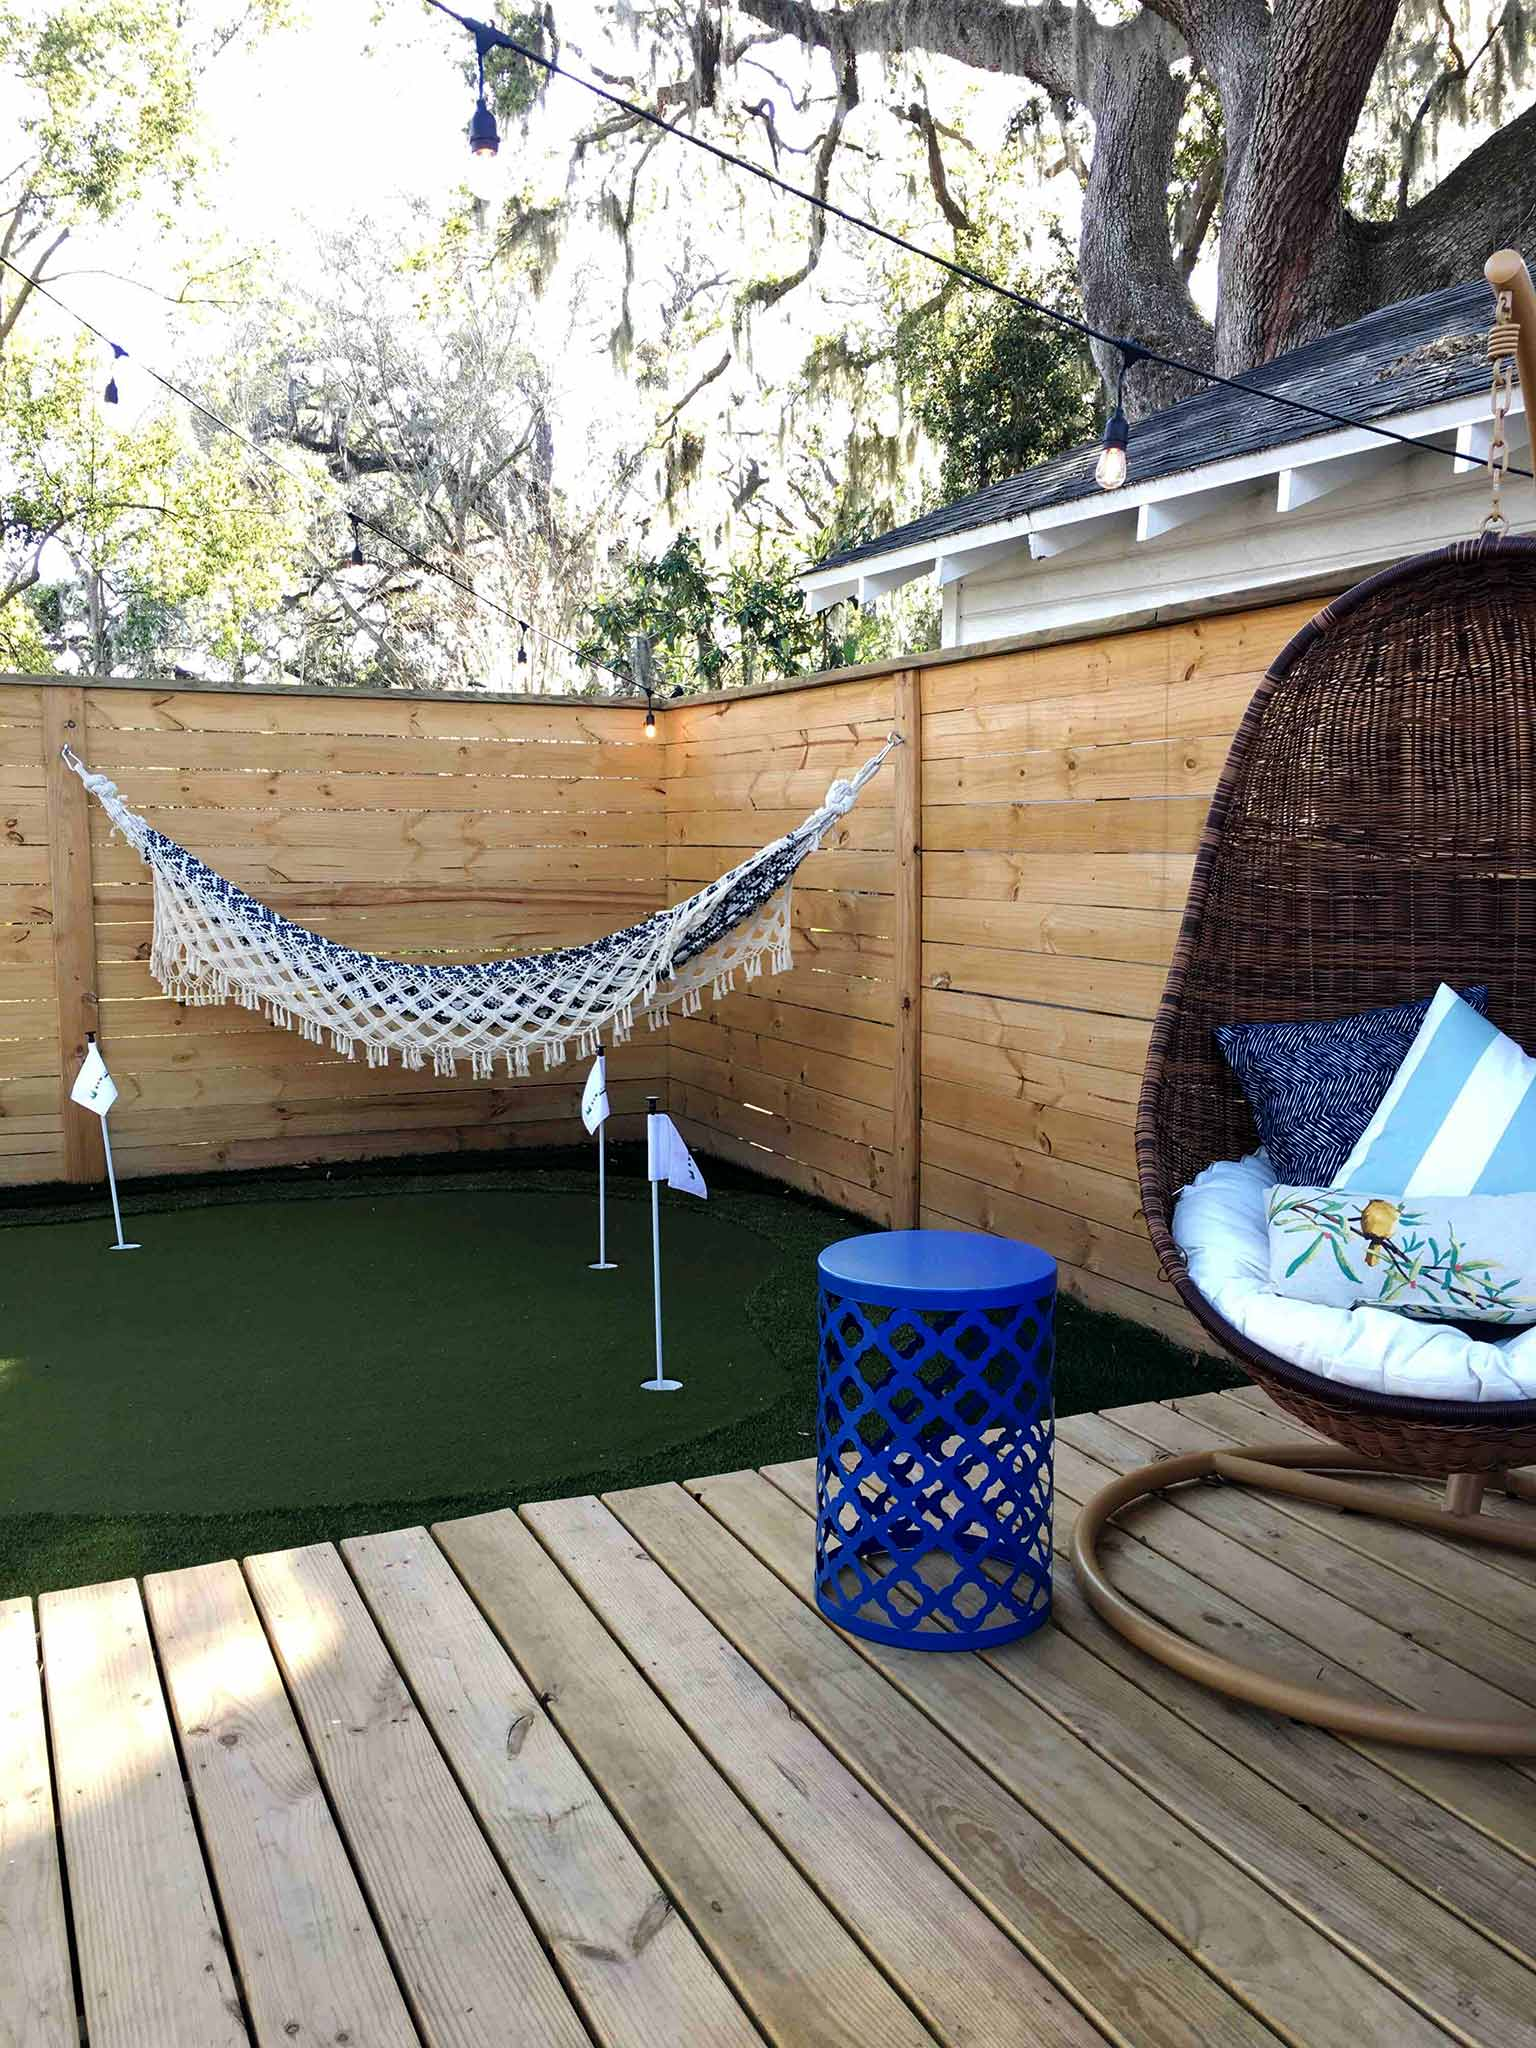 Hammock and putting green - How we planned our backyard space - That Homebird Life Blog